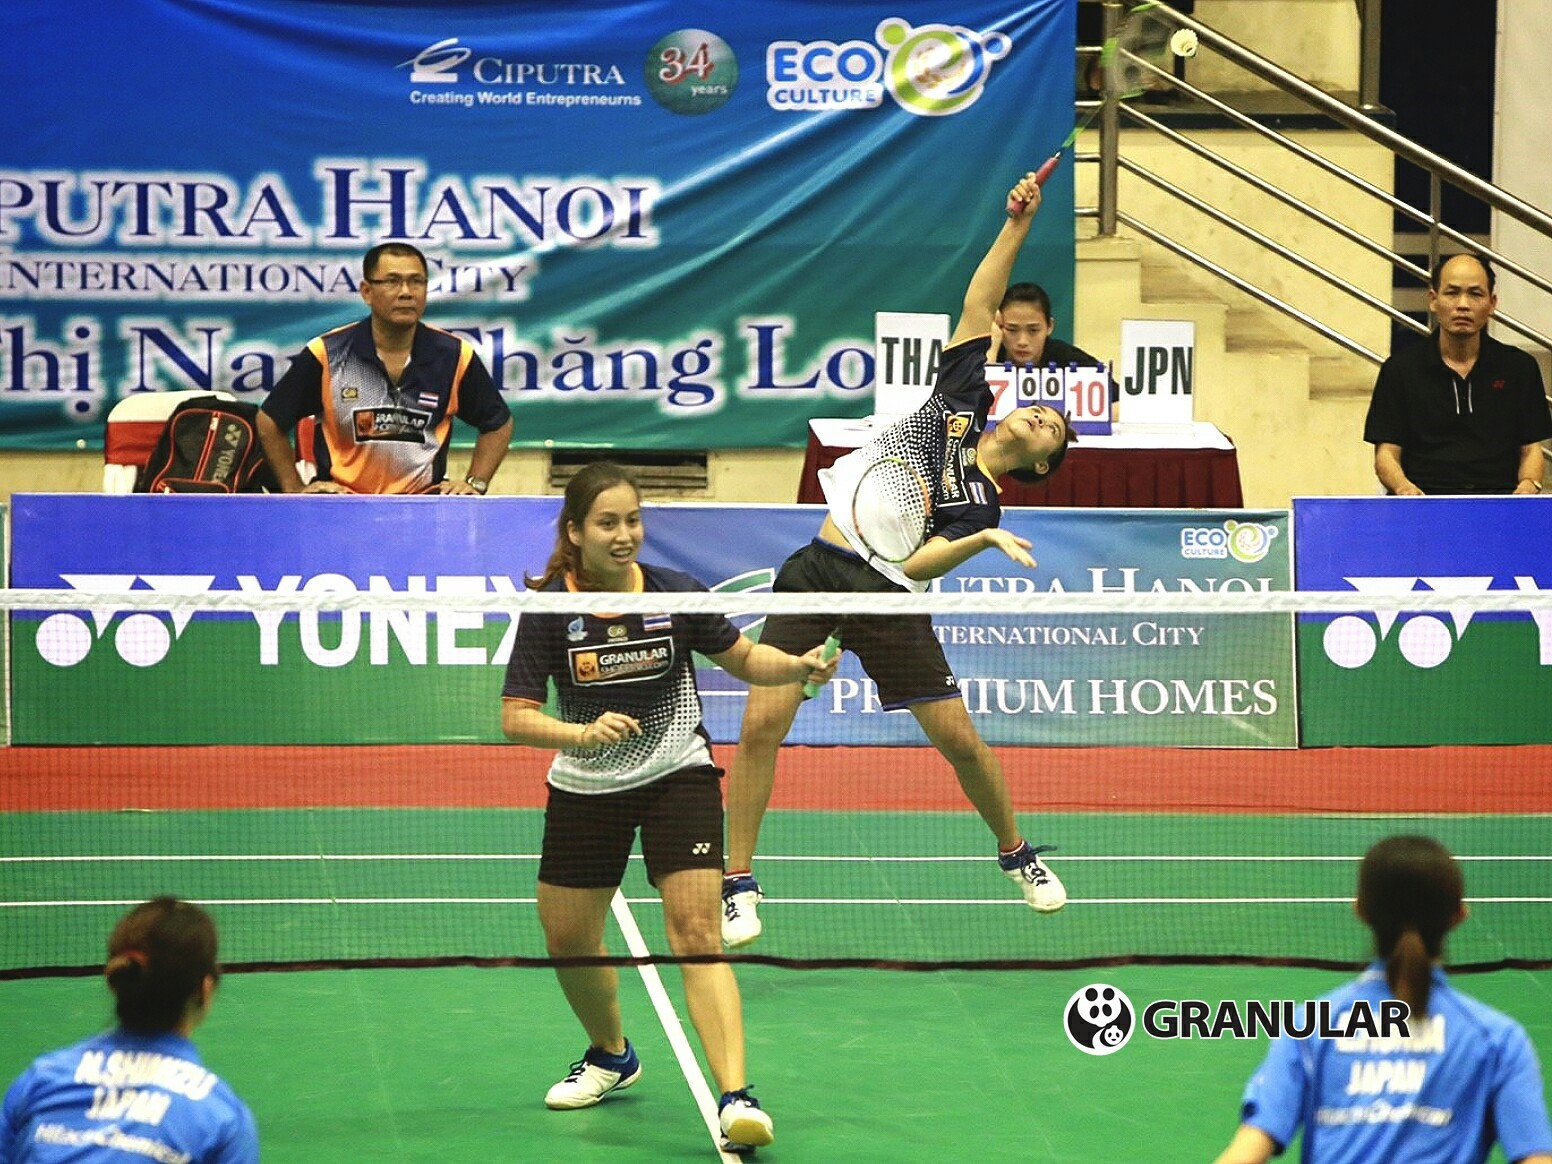 CIPUTRA HANOI - YONEX SUNRISE Vietnam International Challenge 2017 (3) รูปภาพกีฬาแบดมินตัน